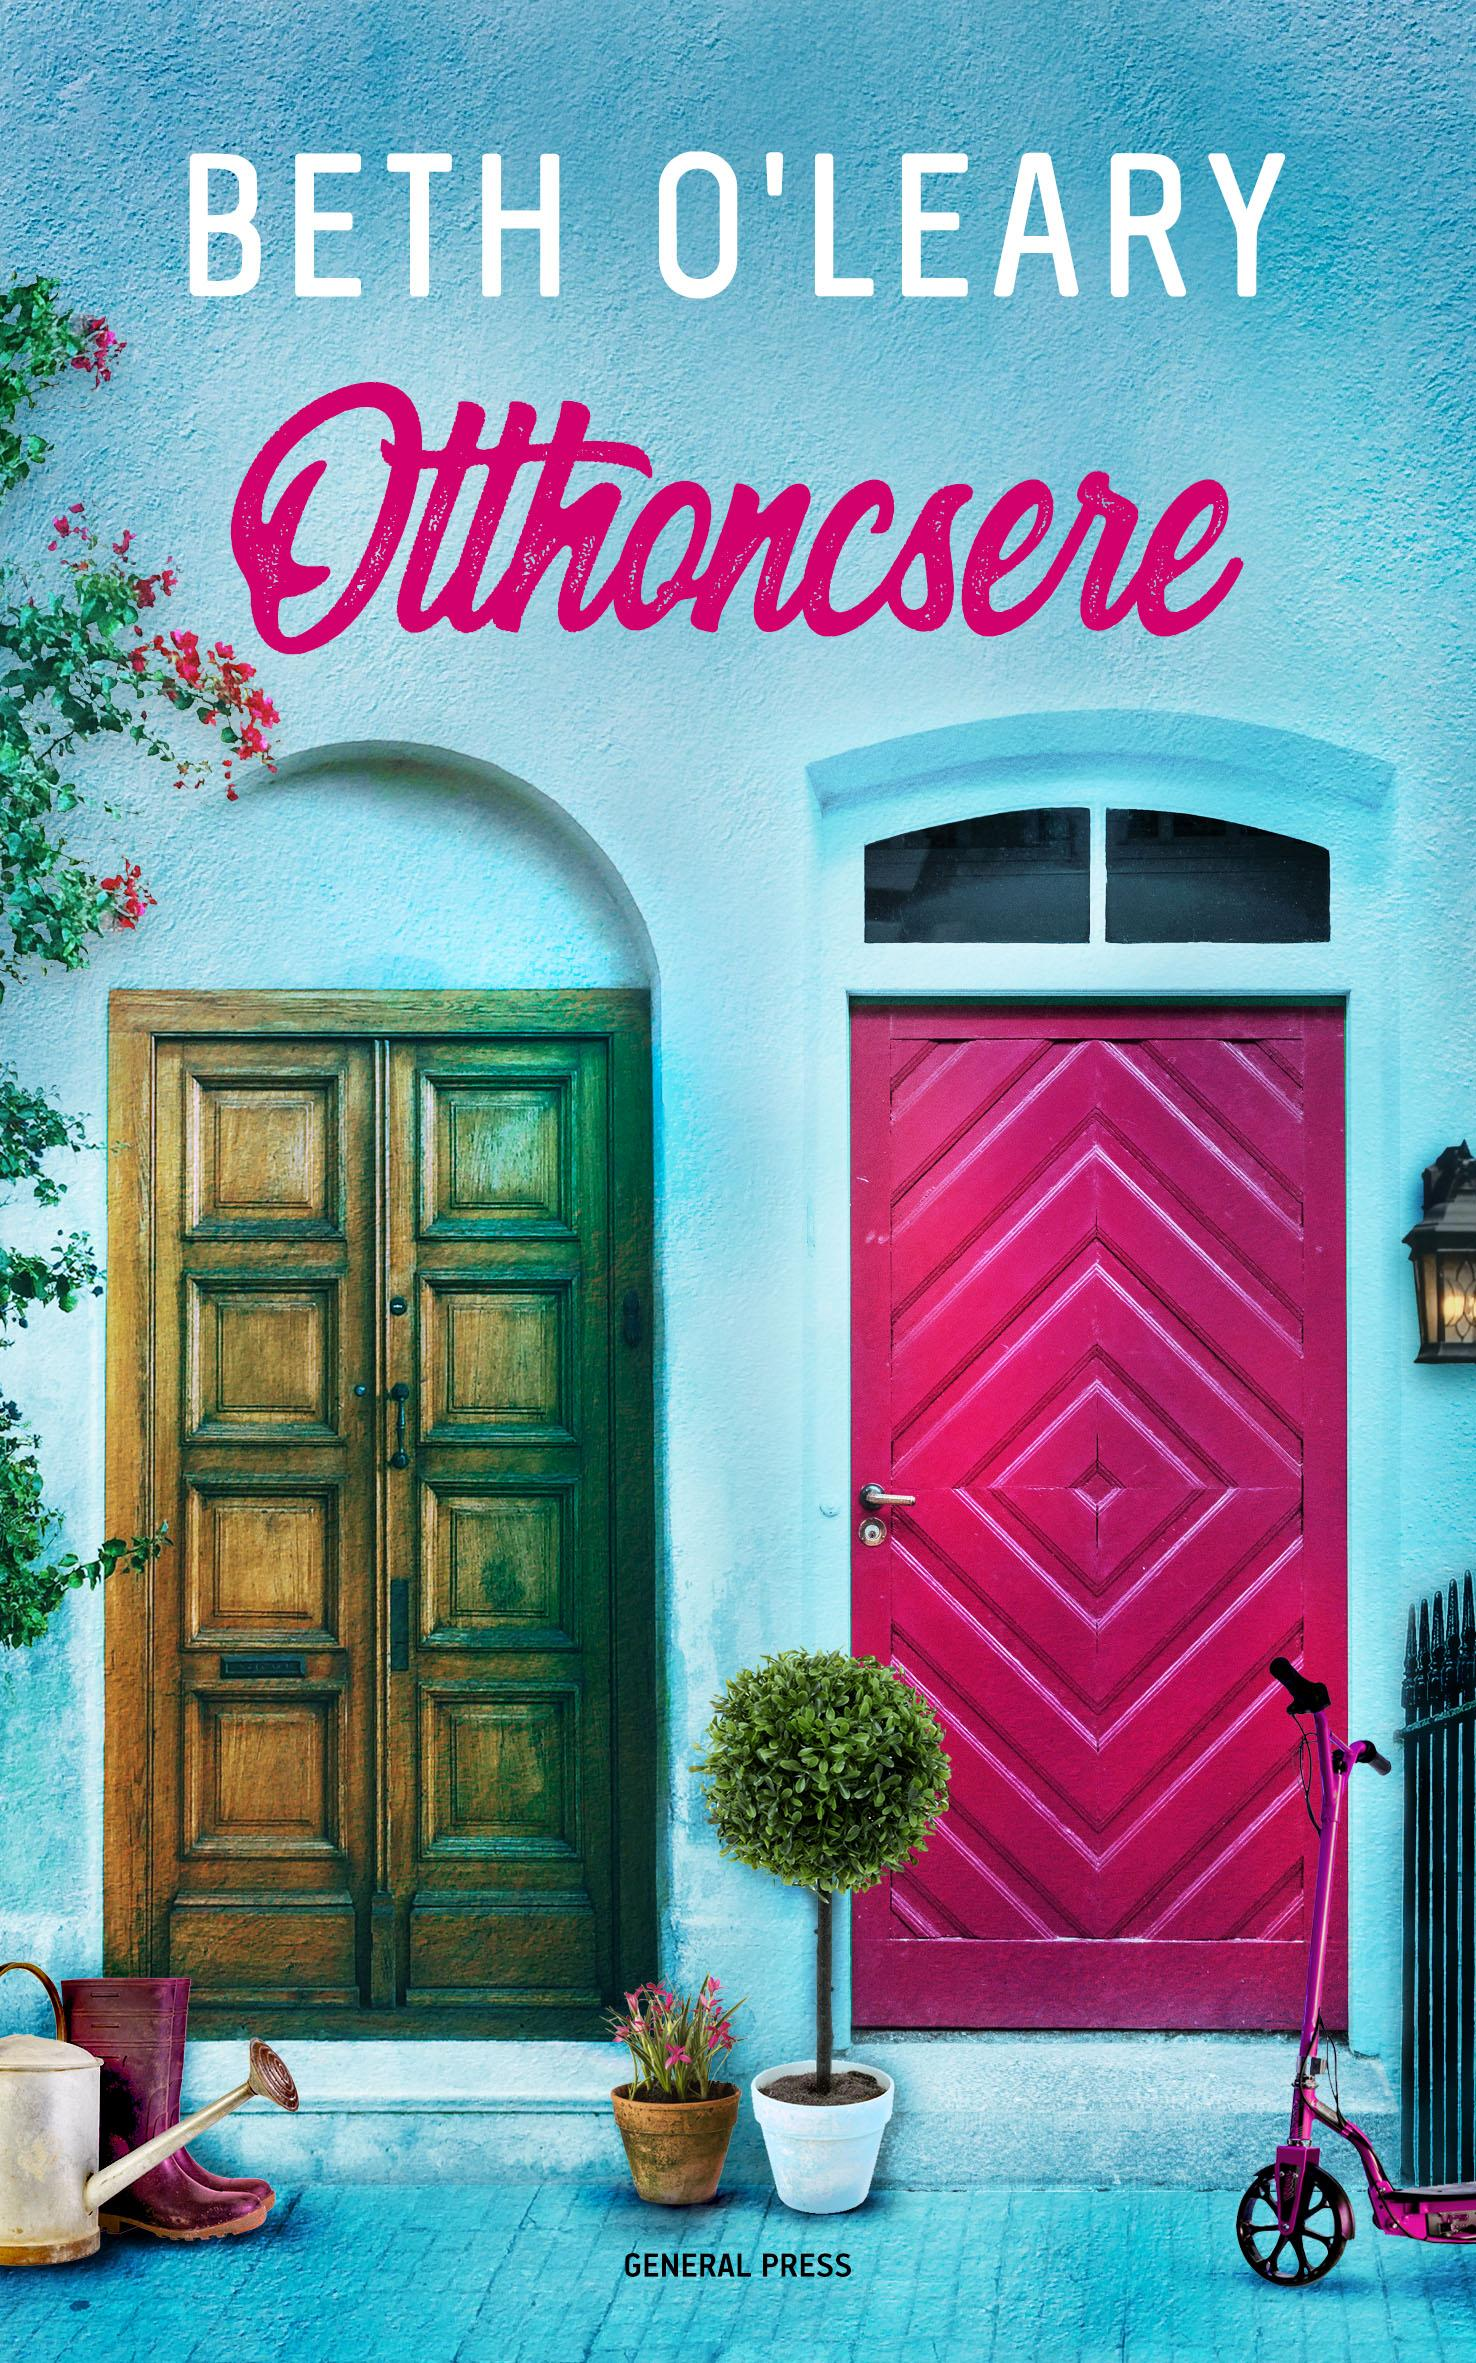 Beth O\'Leary - Otthoncsere